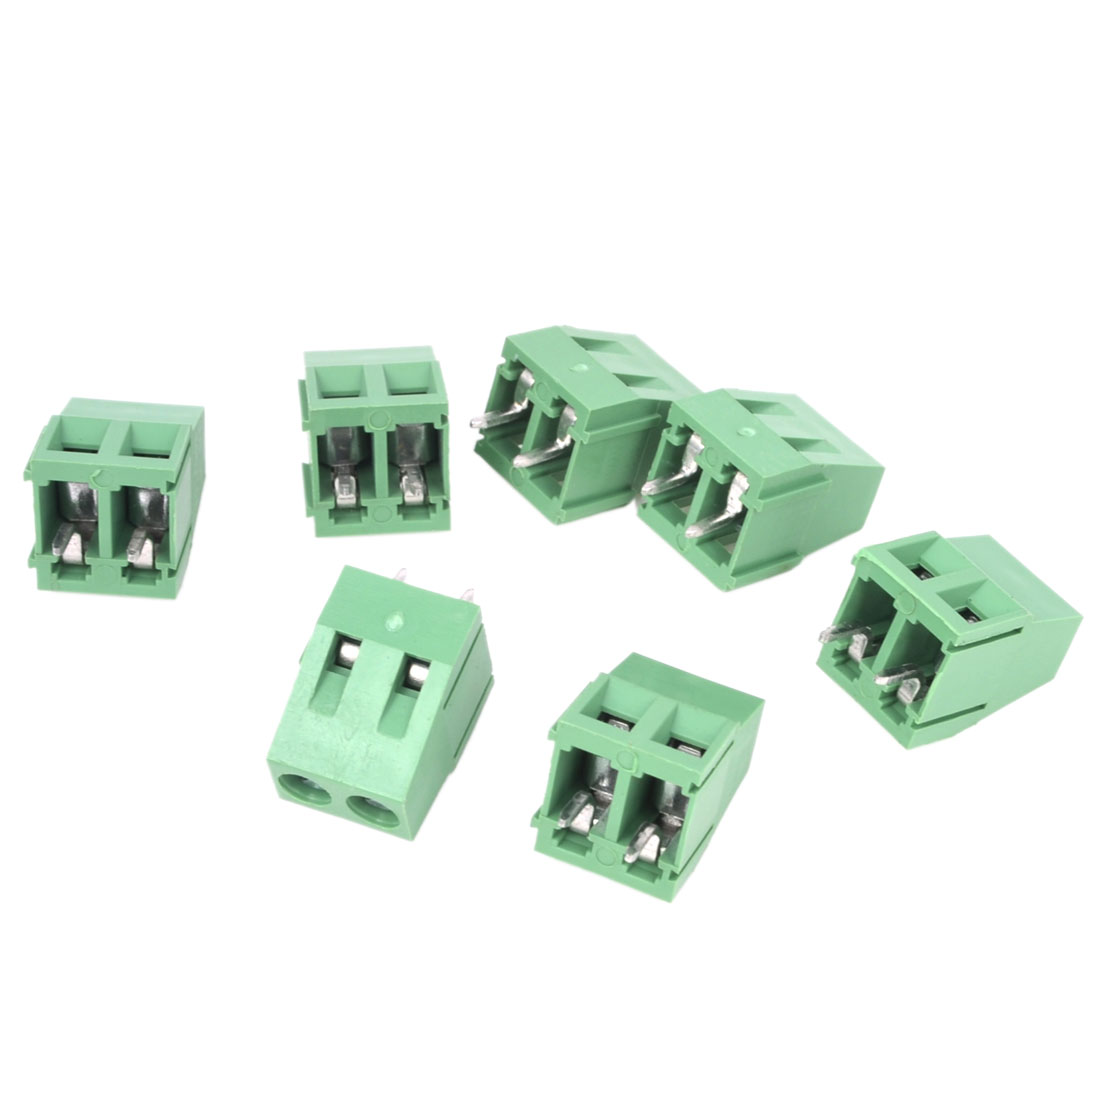 7Pcs 300V 10A 2P 5mm Pitch PCB Mount Screw Terminal Block Connector Green